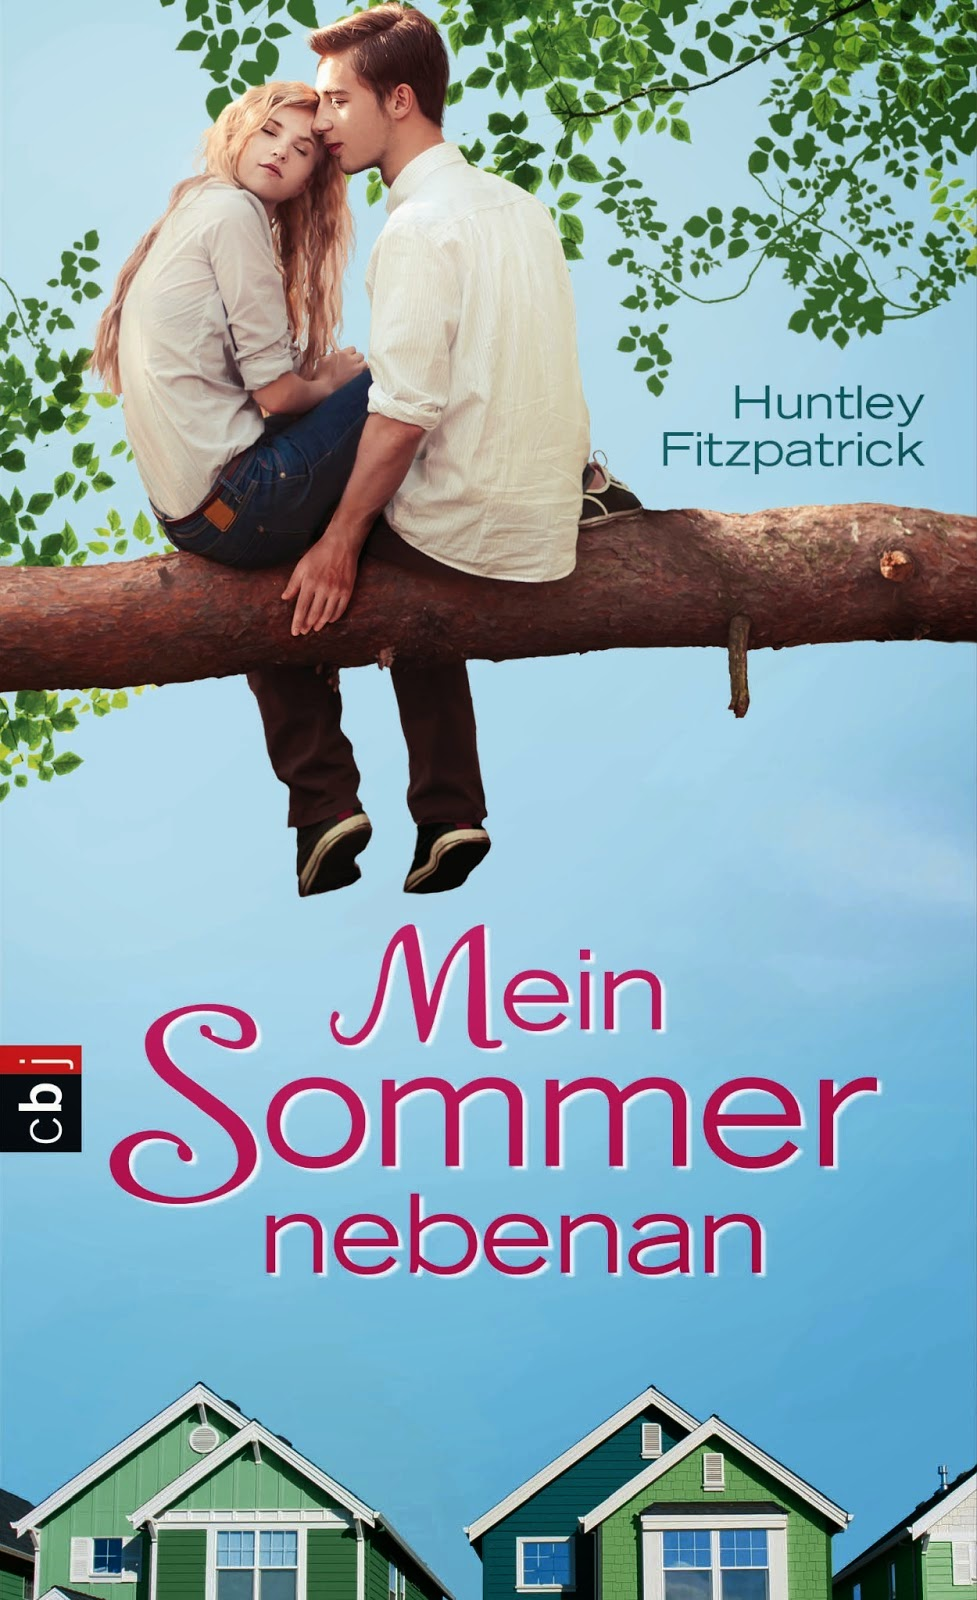 http://www.amazon.de/Mein-Sommer-nebenan-Huntley-Fitzpatrick/dp/3570155722/ref=sr_1_1?ie=UTF8&qid=1401115443&sr=8-1&keywords=mein+sommer+nebenan